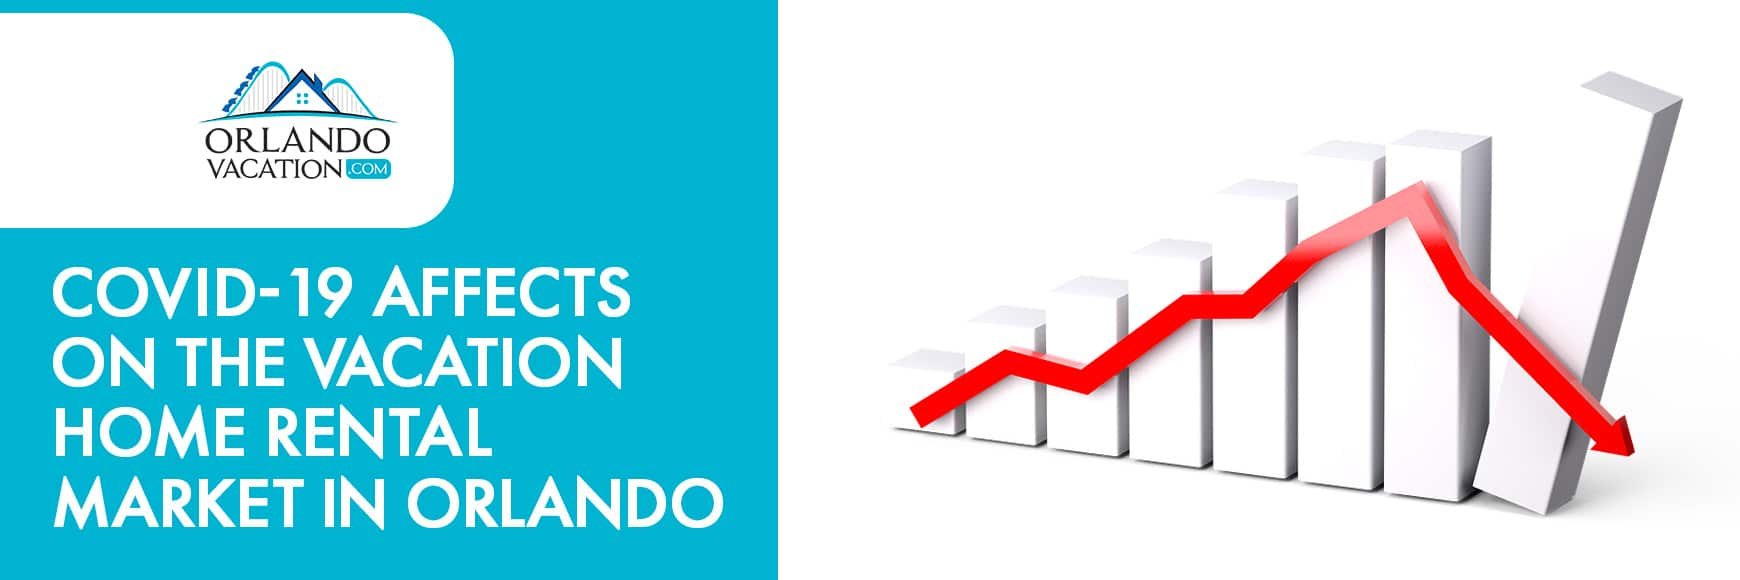 COVID-19 Affects on the Vacation Home Rental Market in Orlando